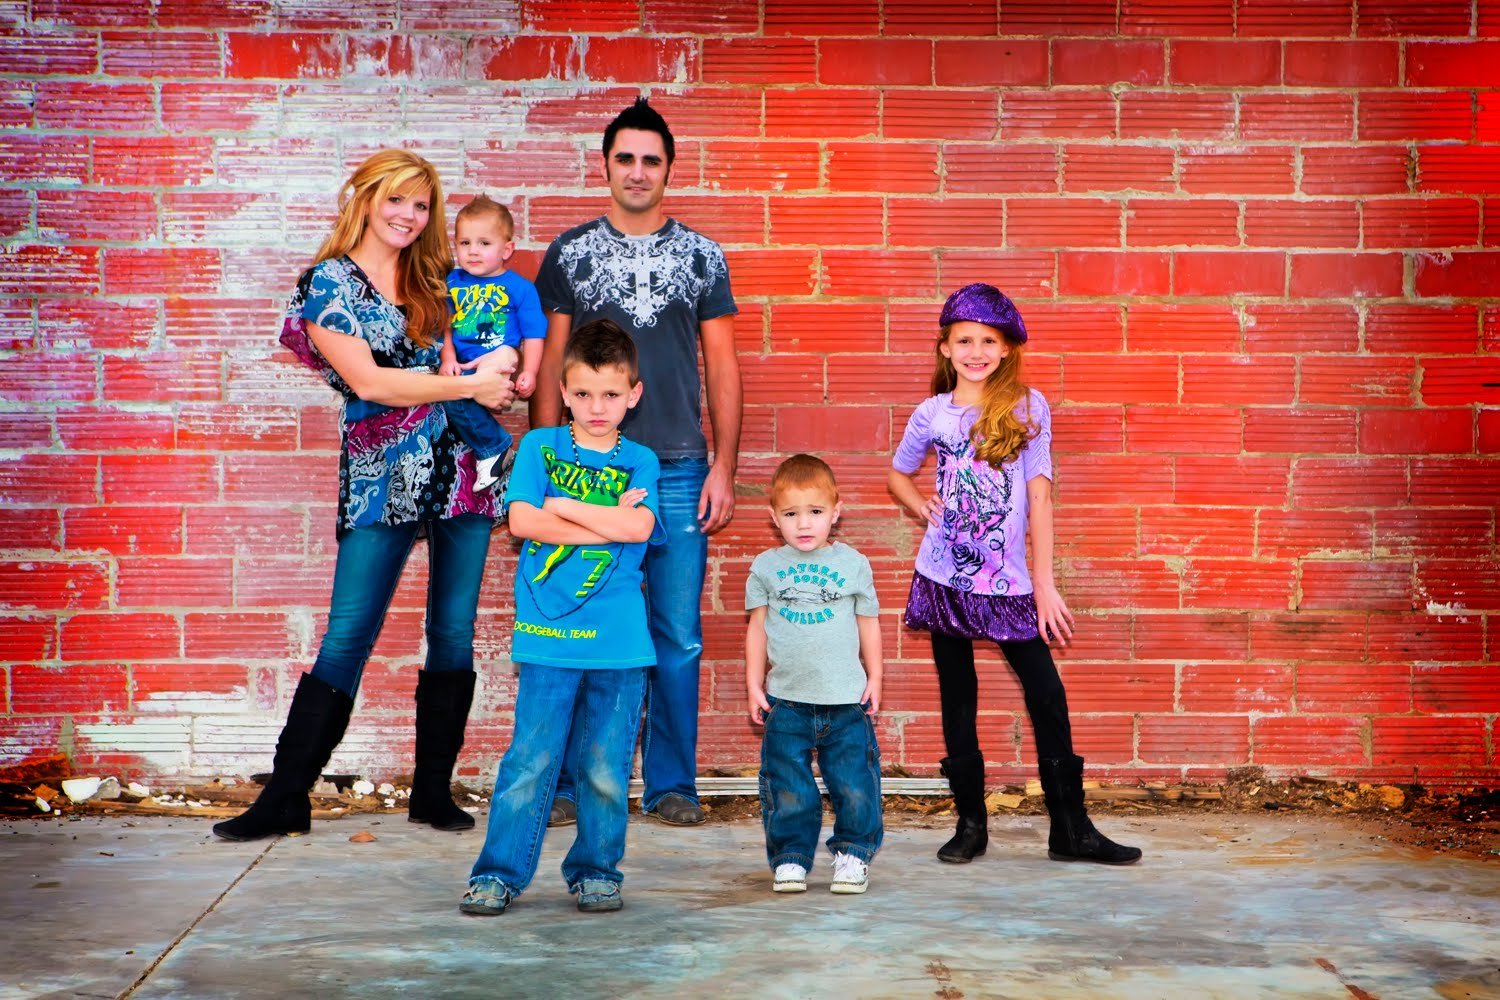 Artistic Images Photography: Unique Family Photos for a ...